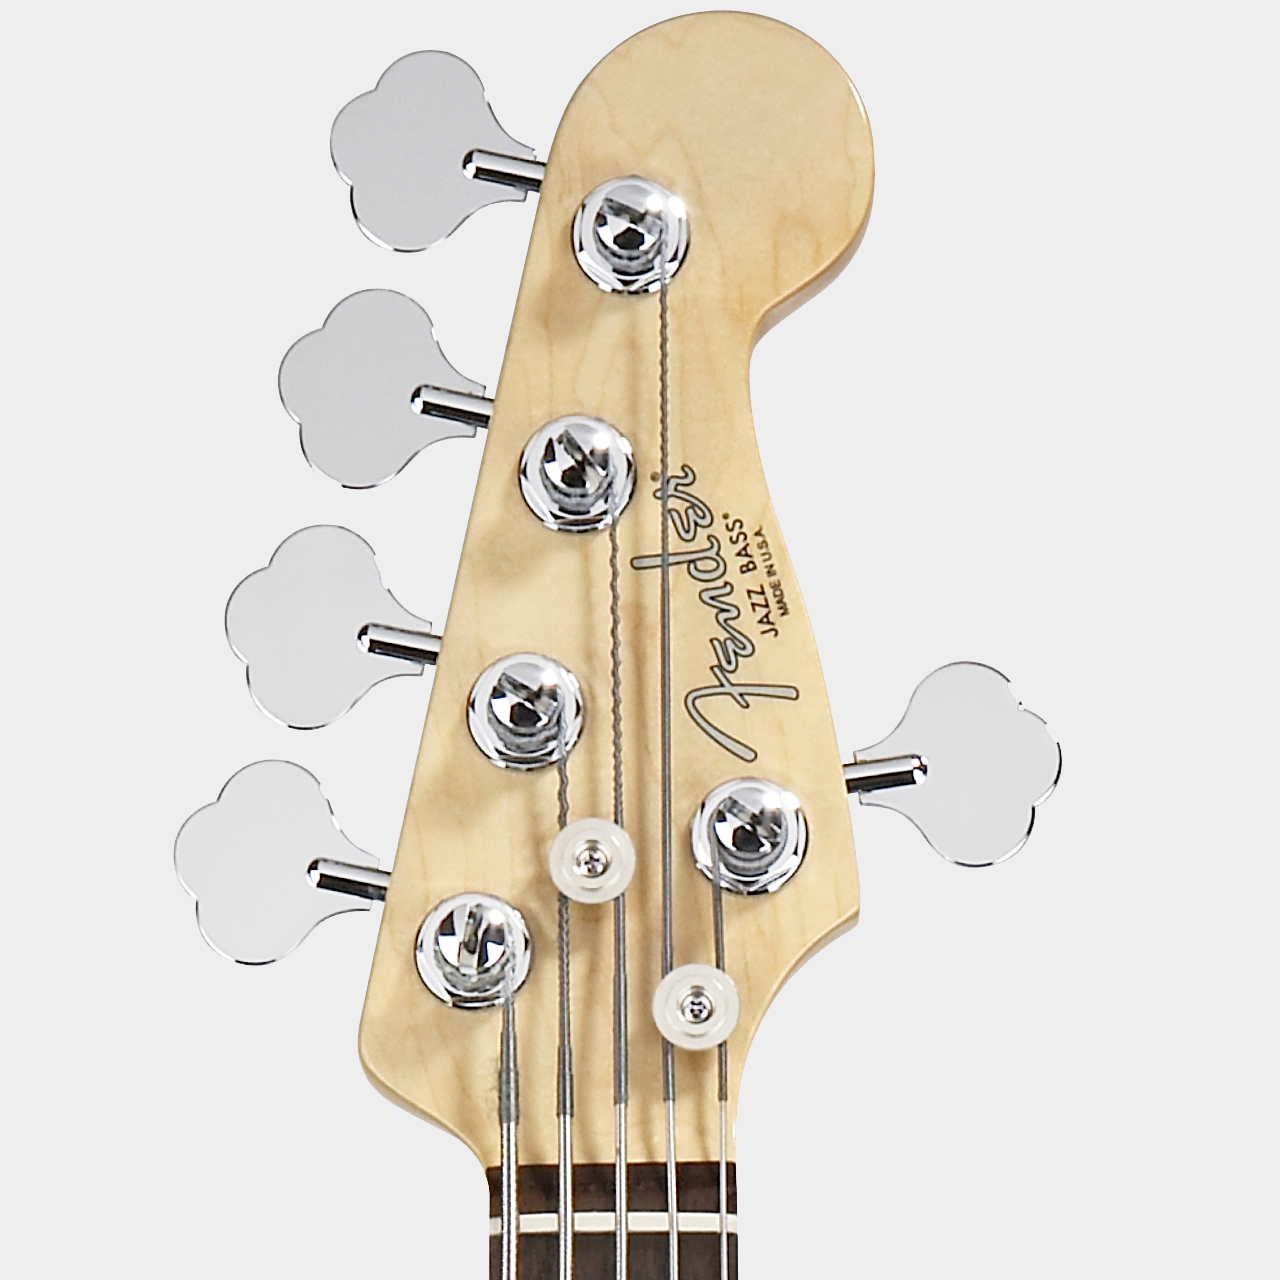 FENDER American Standard Jazz Bass V 3CS Headstock Detail